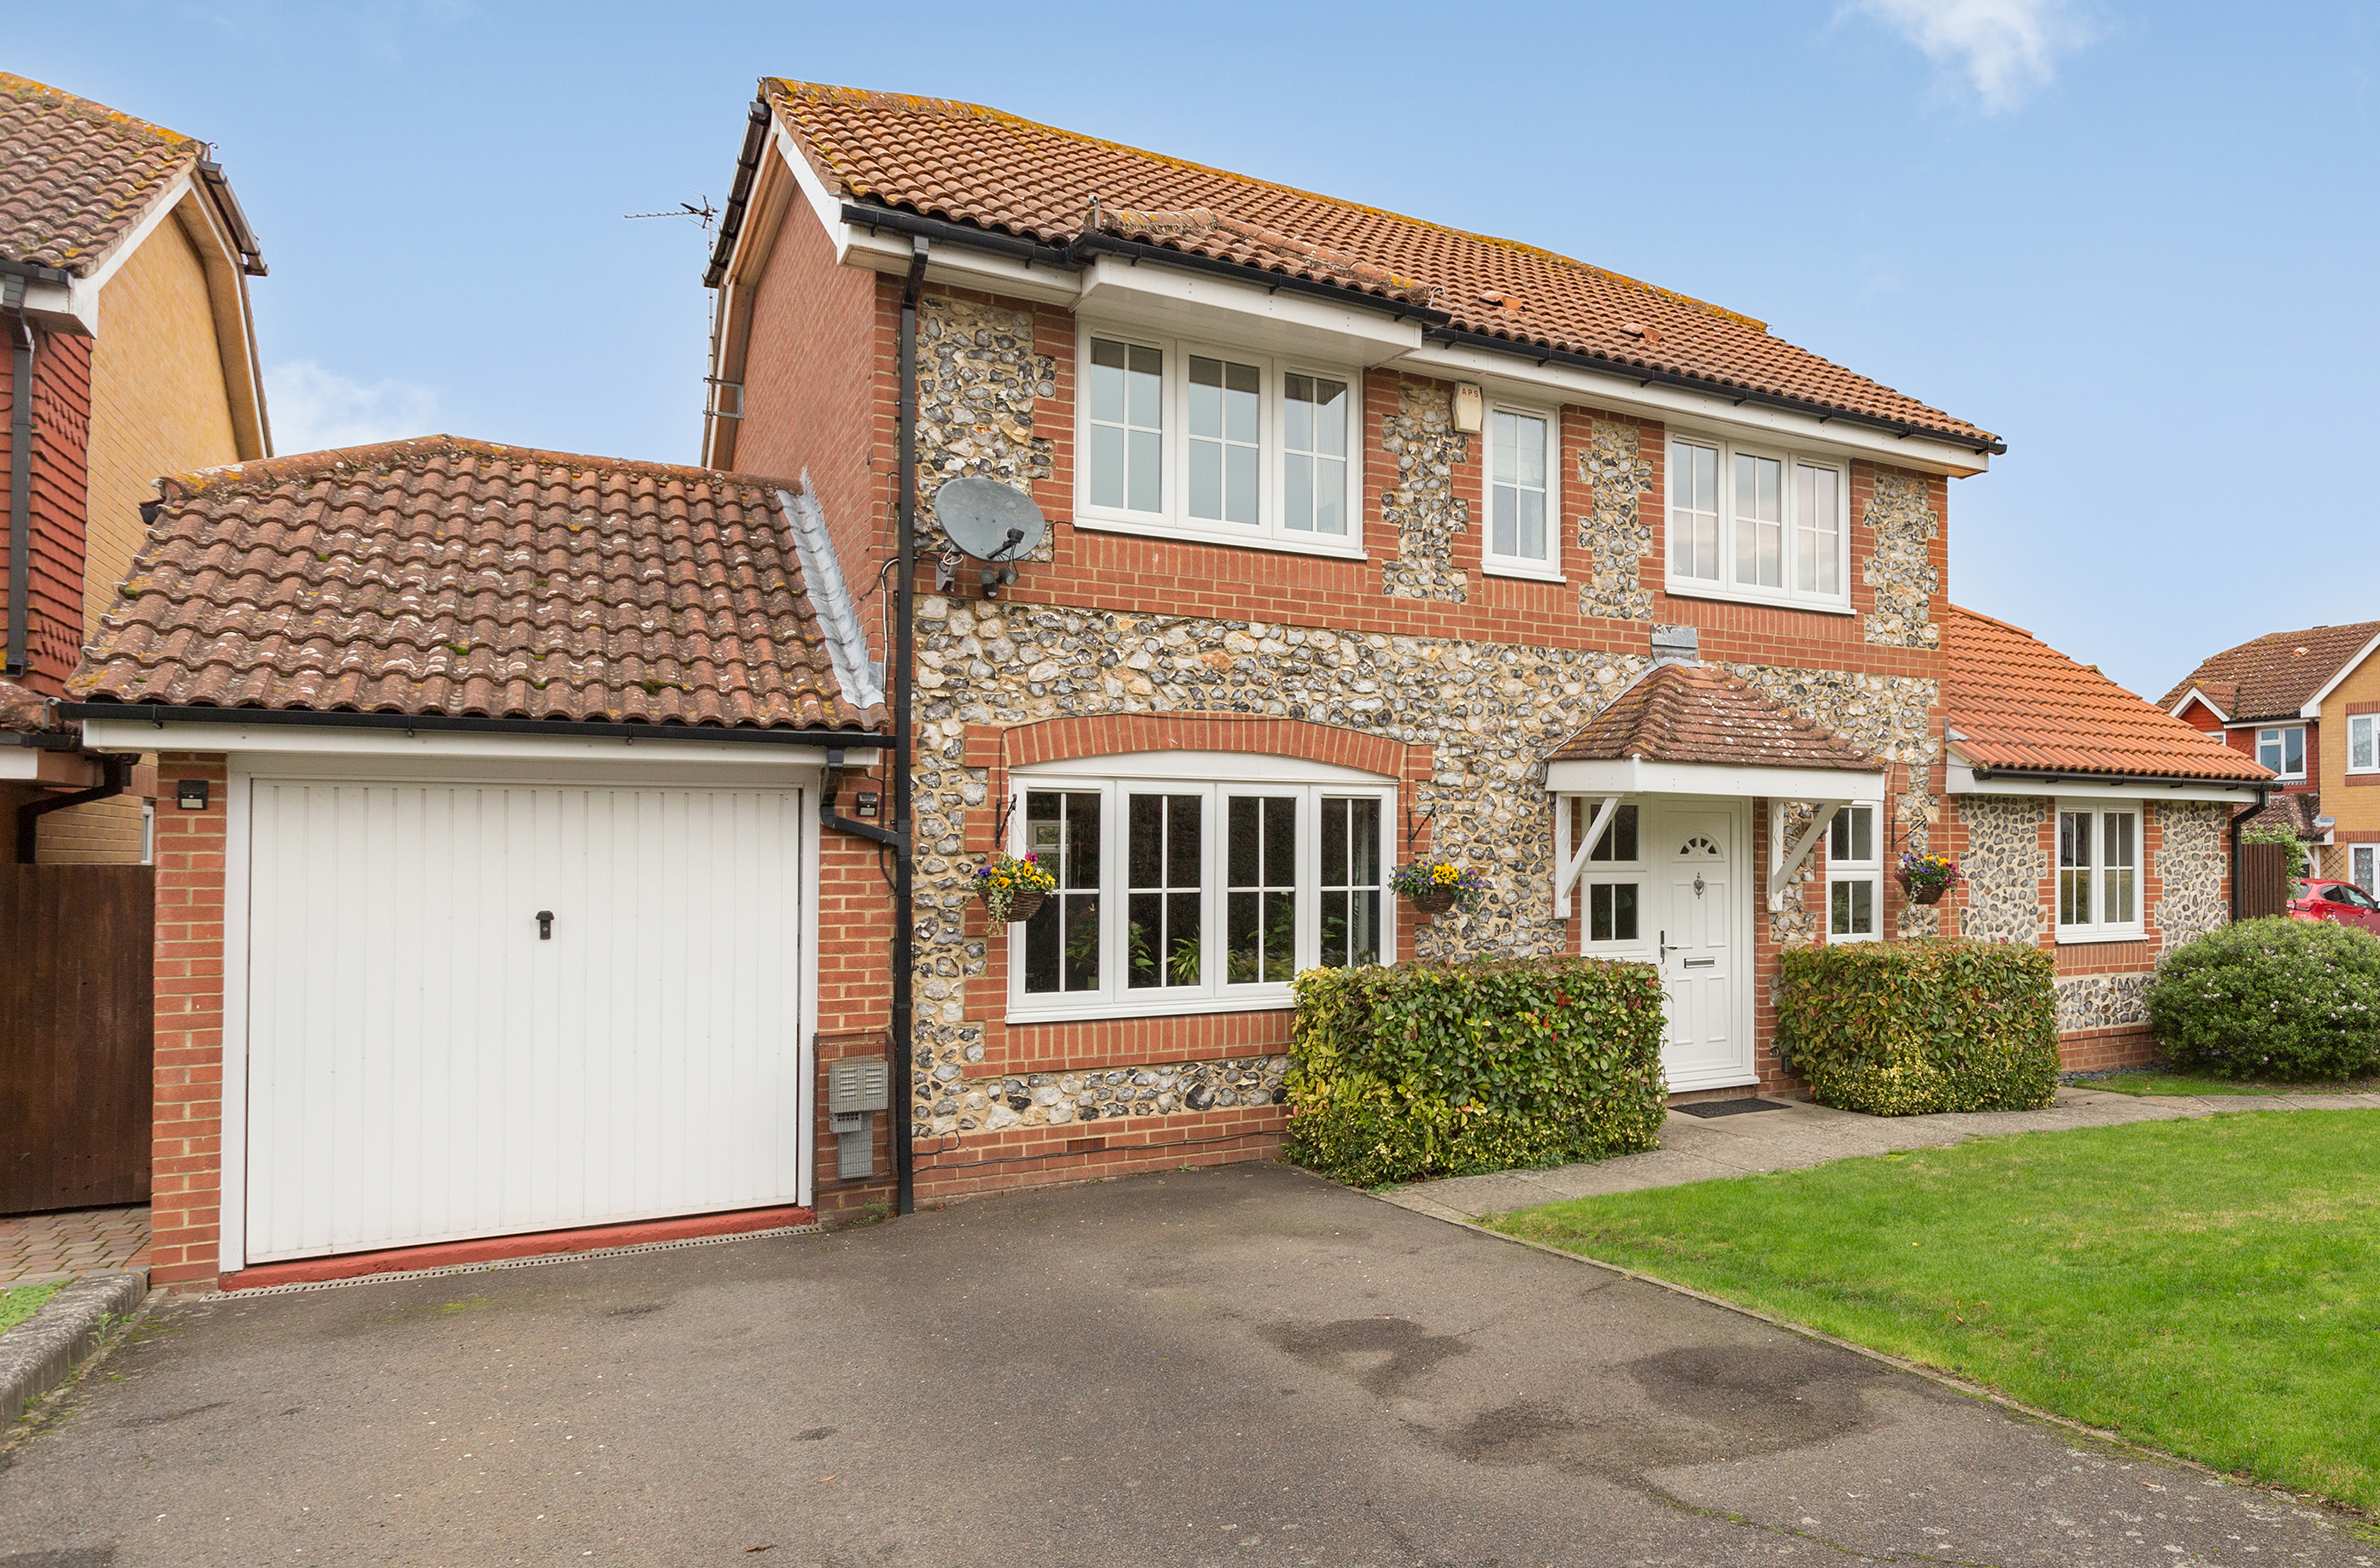 Hartley - £699,995